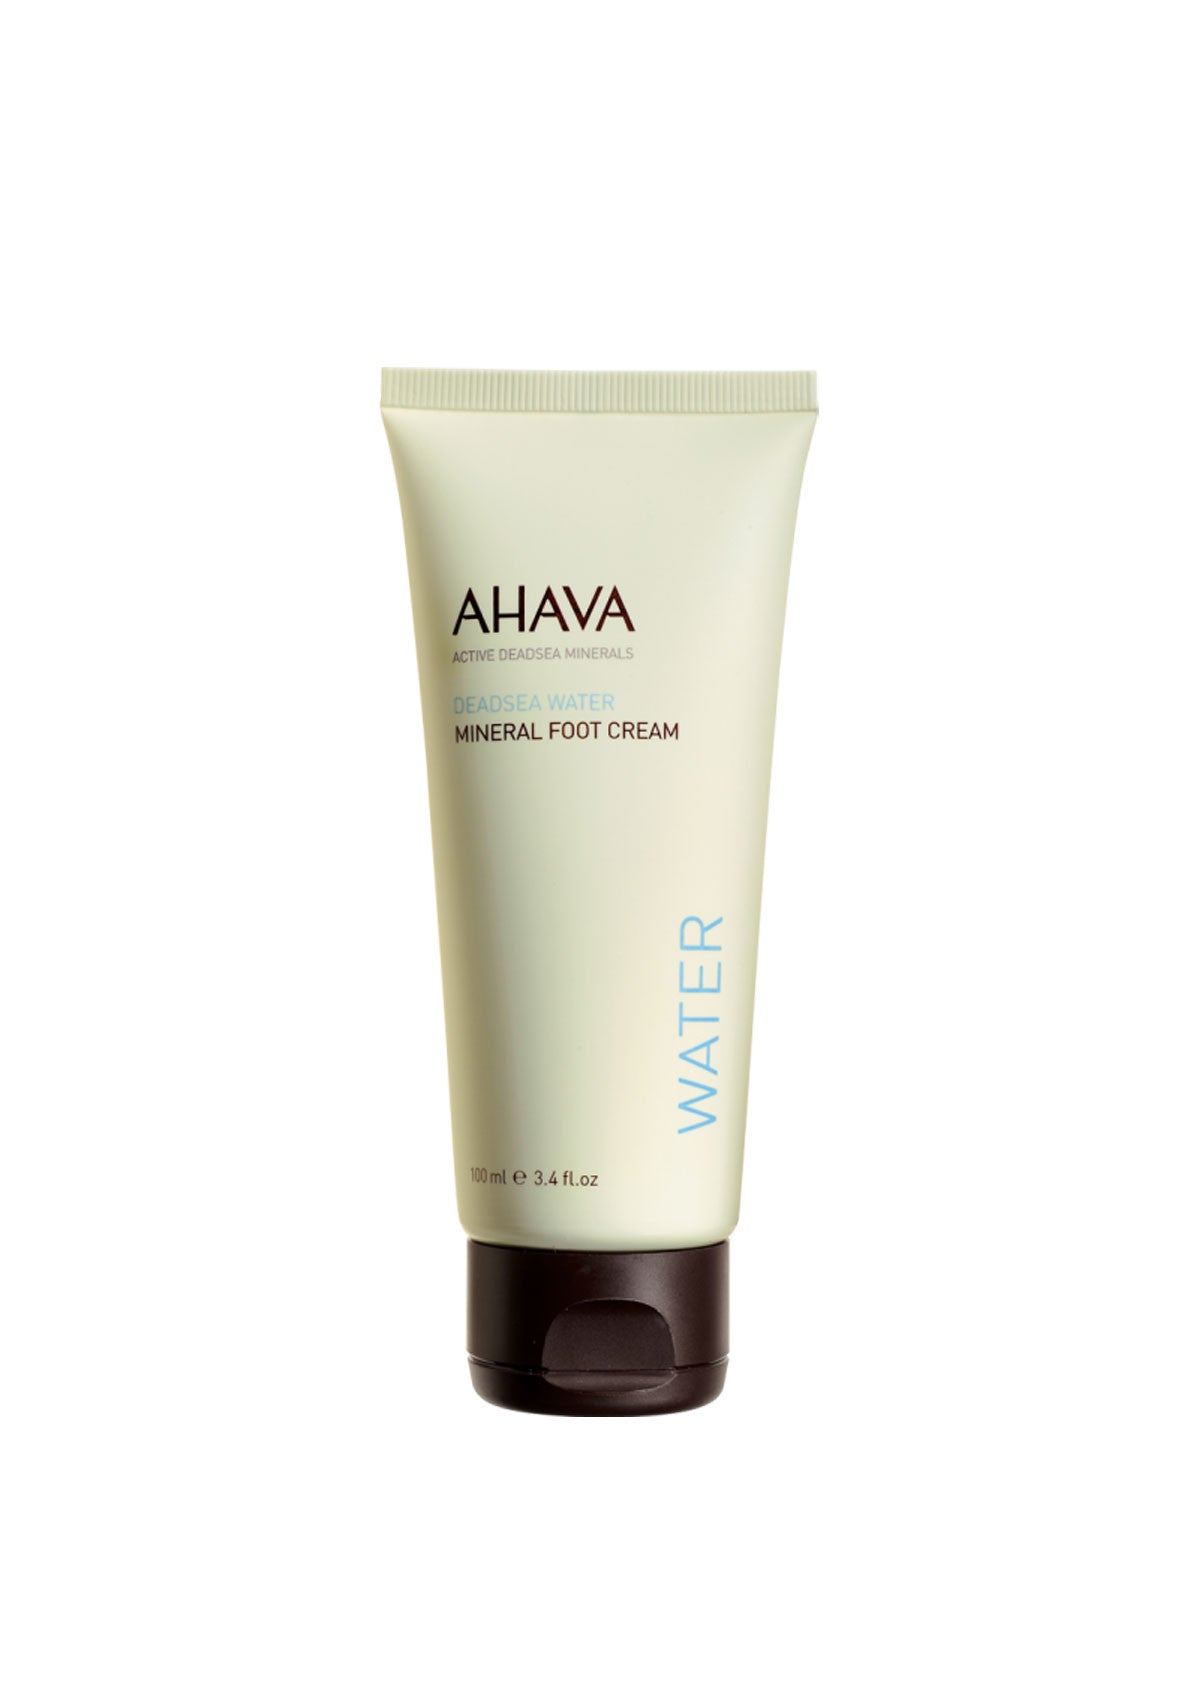 AHAVA - Mineral Foot Cream - DeadSeaShop.co.uk